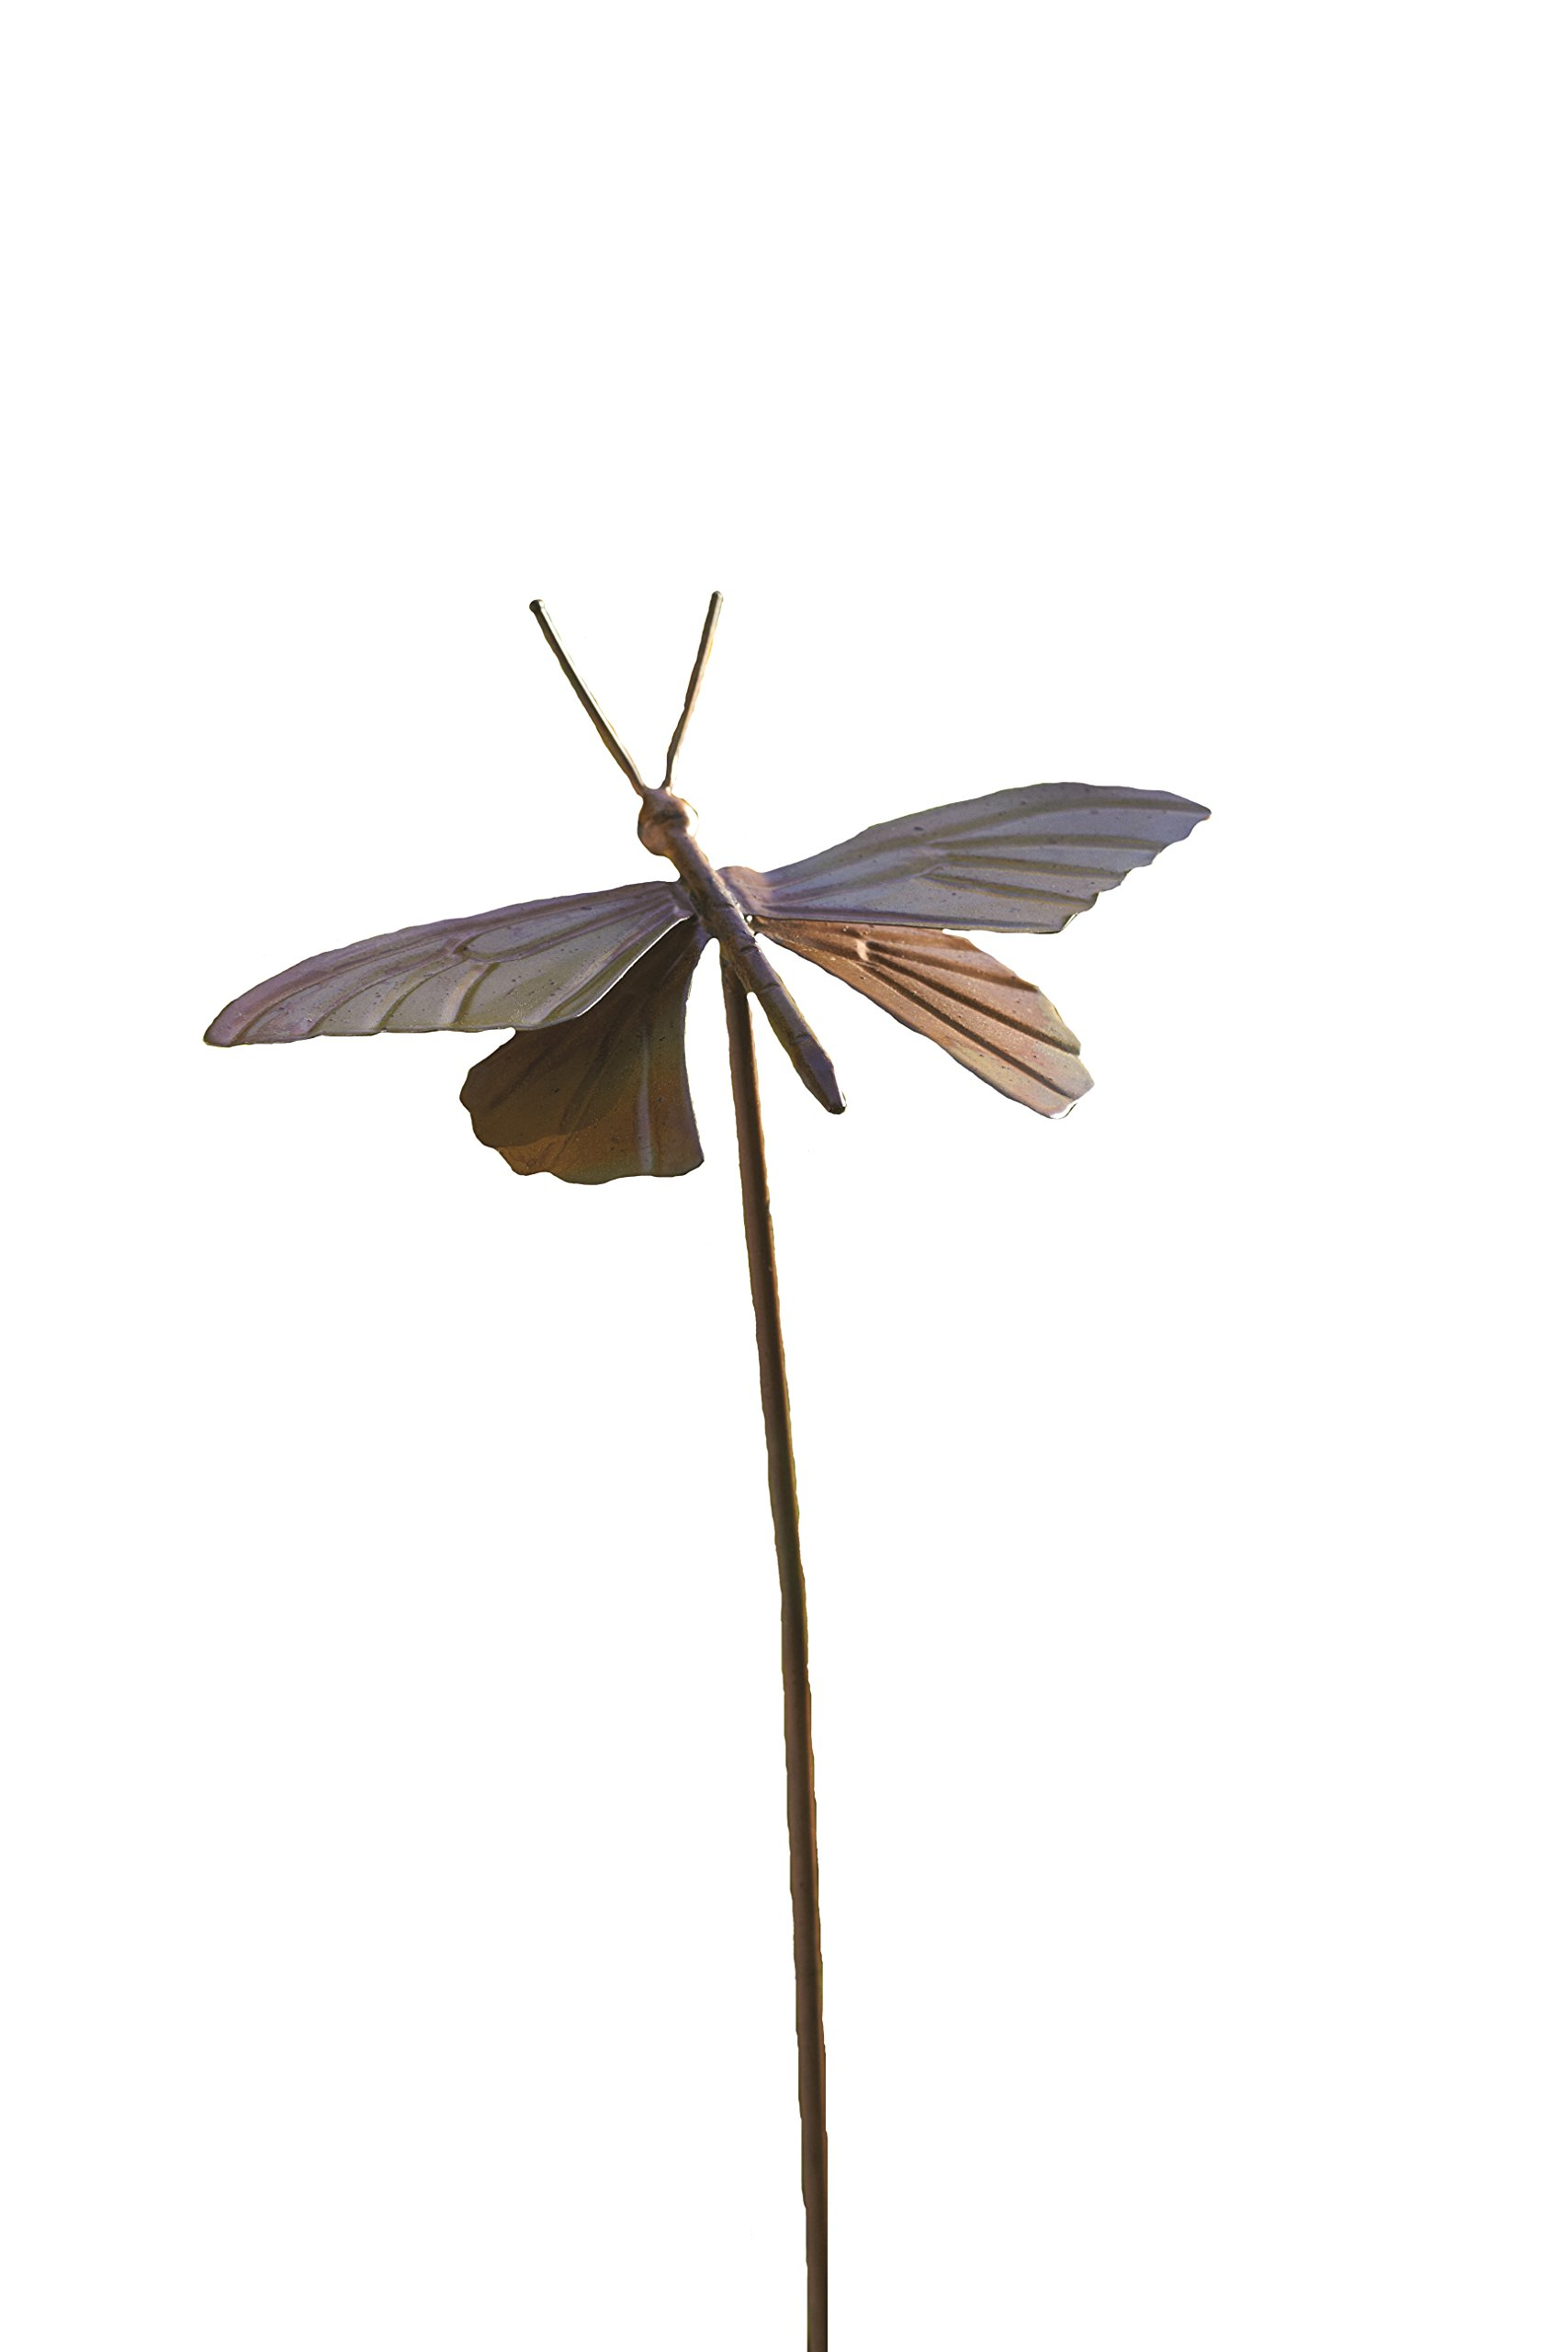 Ancient Graffiti Flamed Butterfly Garden Stake, 6.5 by 4.5 by 29-Inch